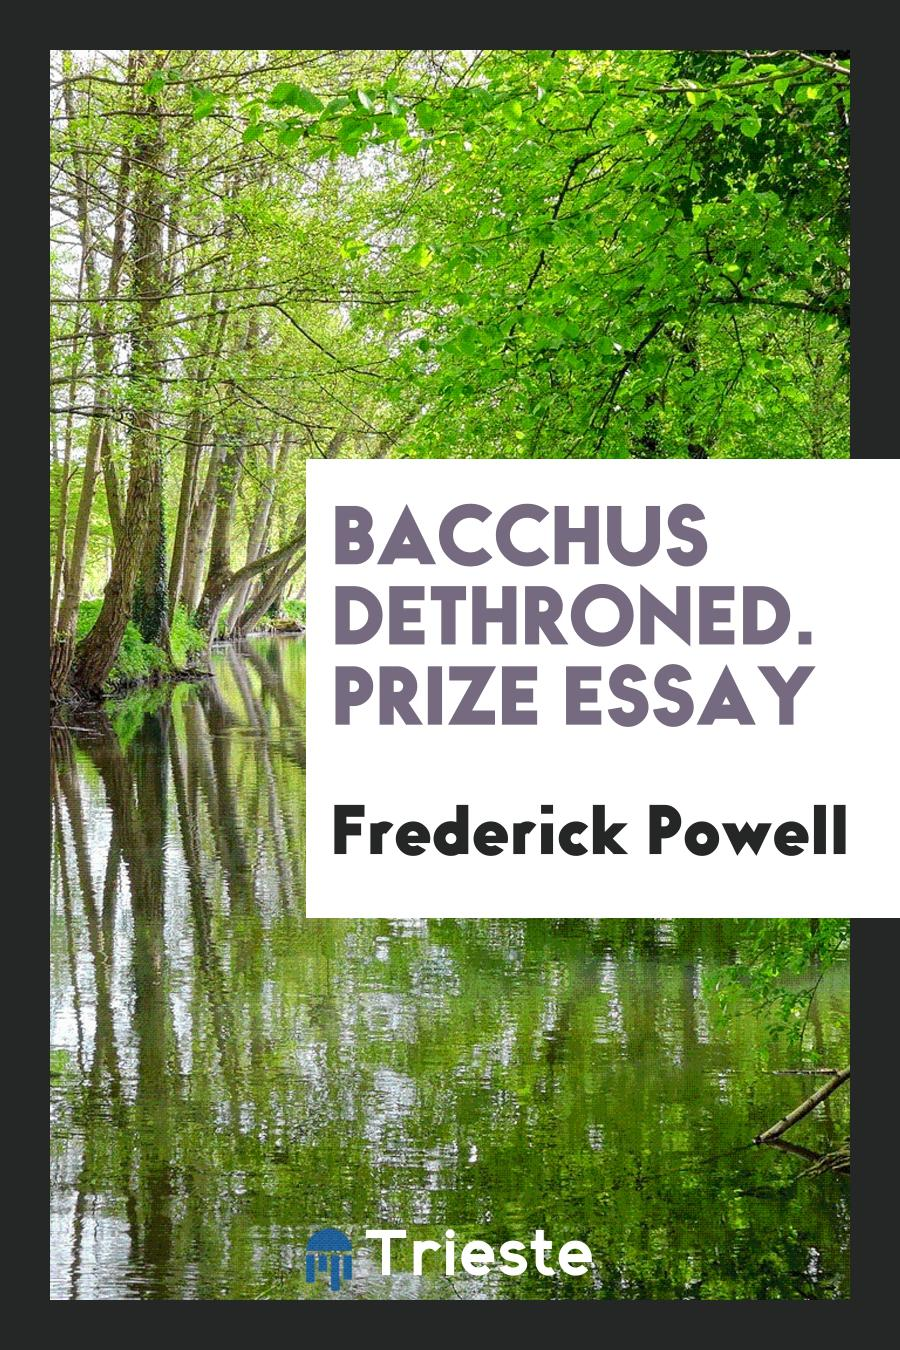 Frederick Powell - Bacchus Dethroned. Prize Essay